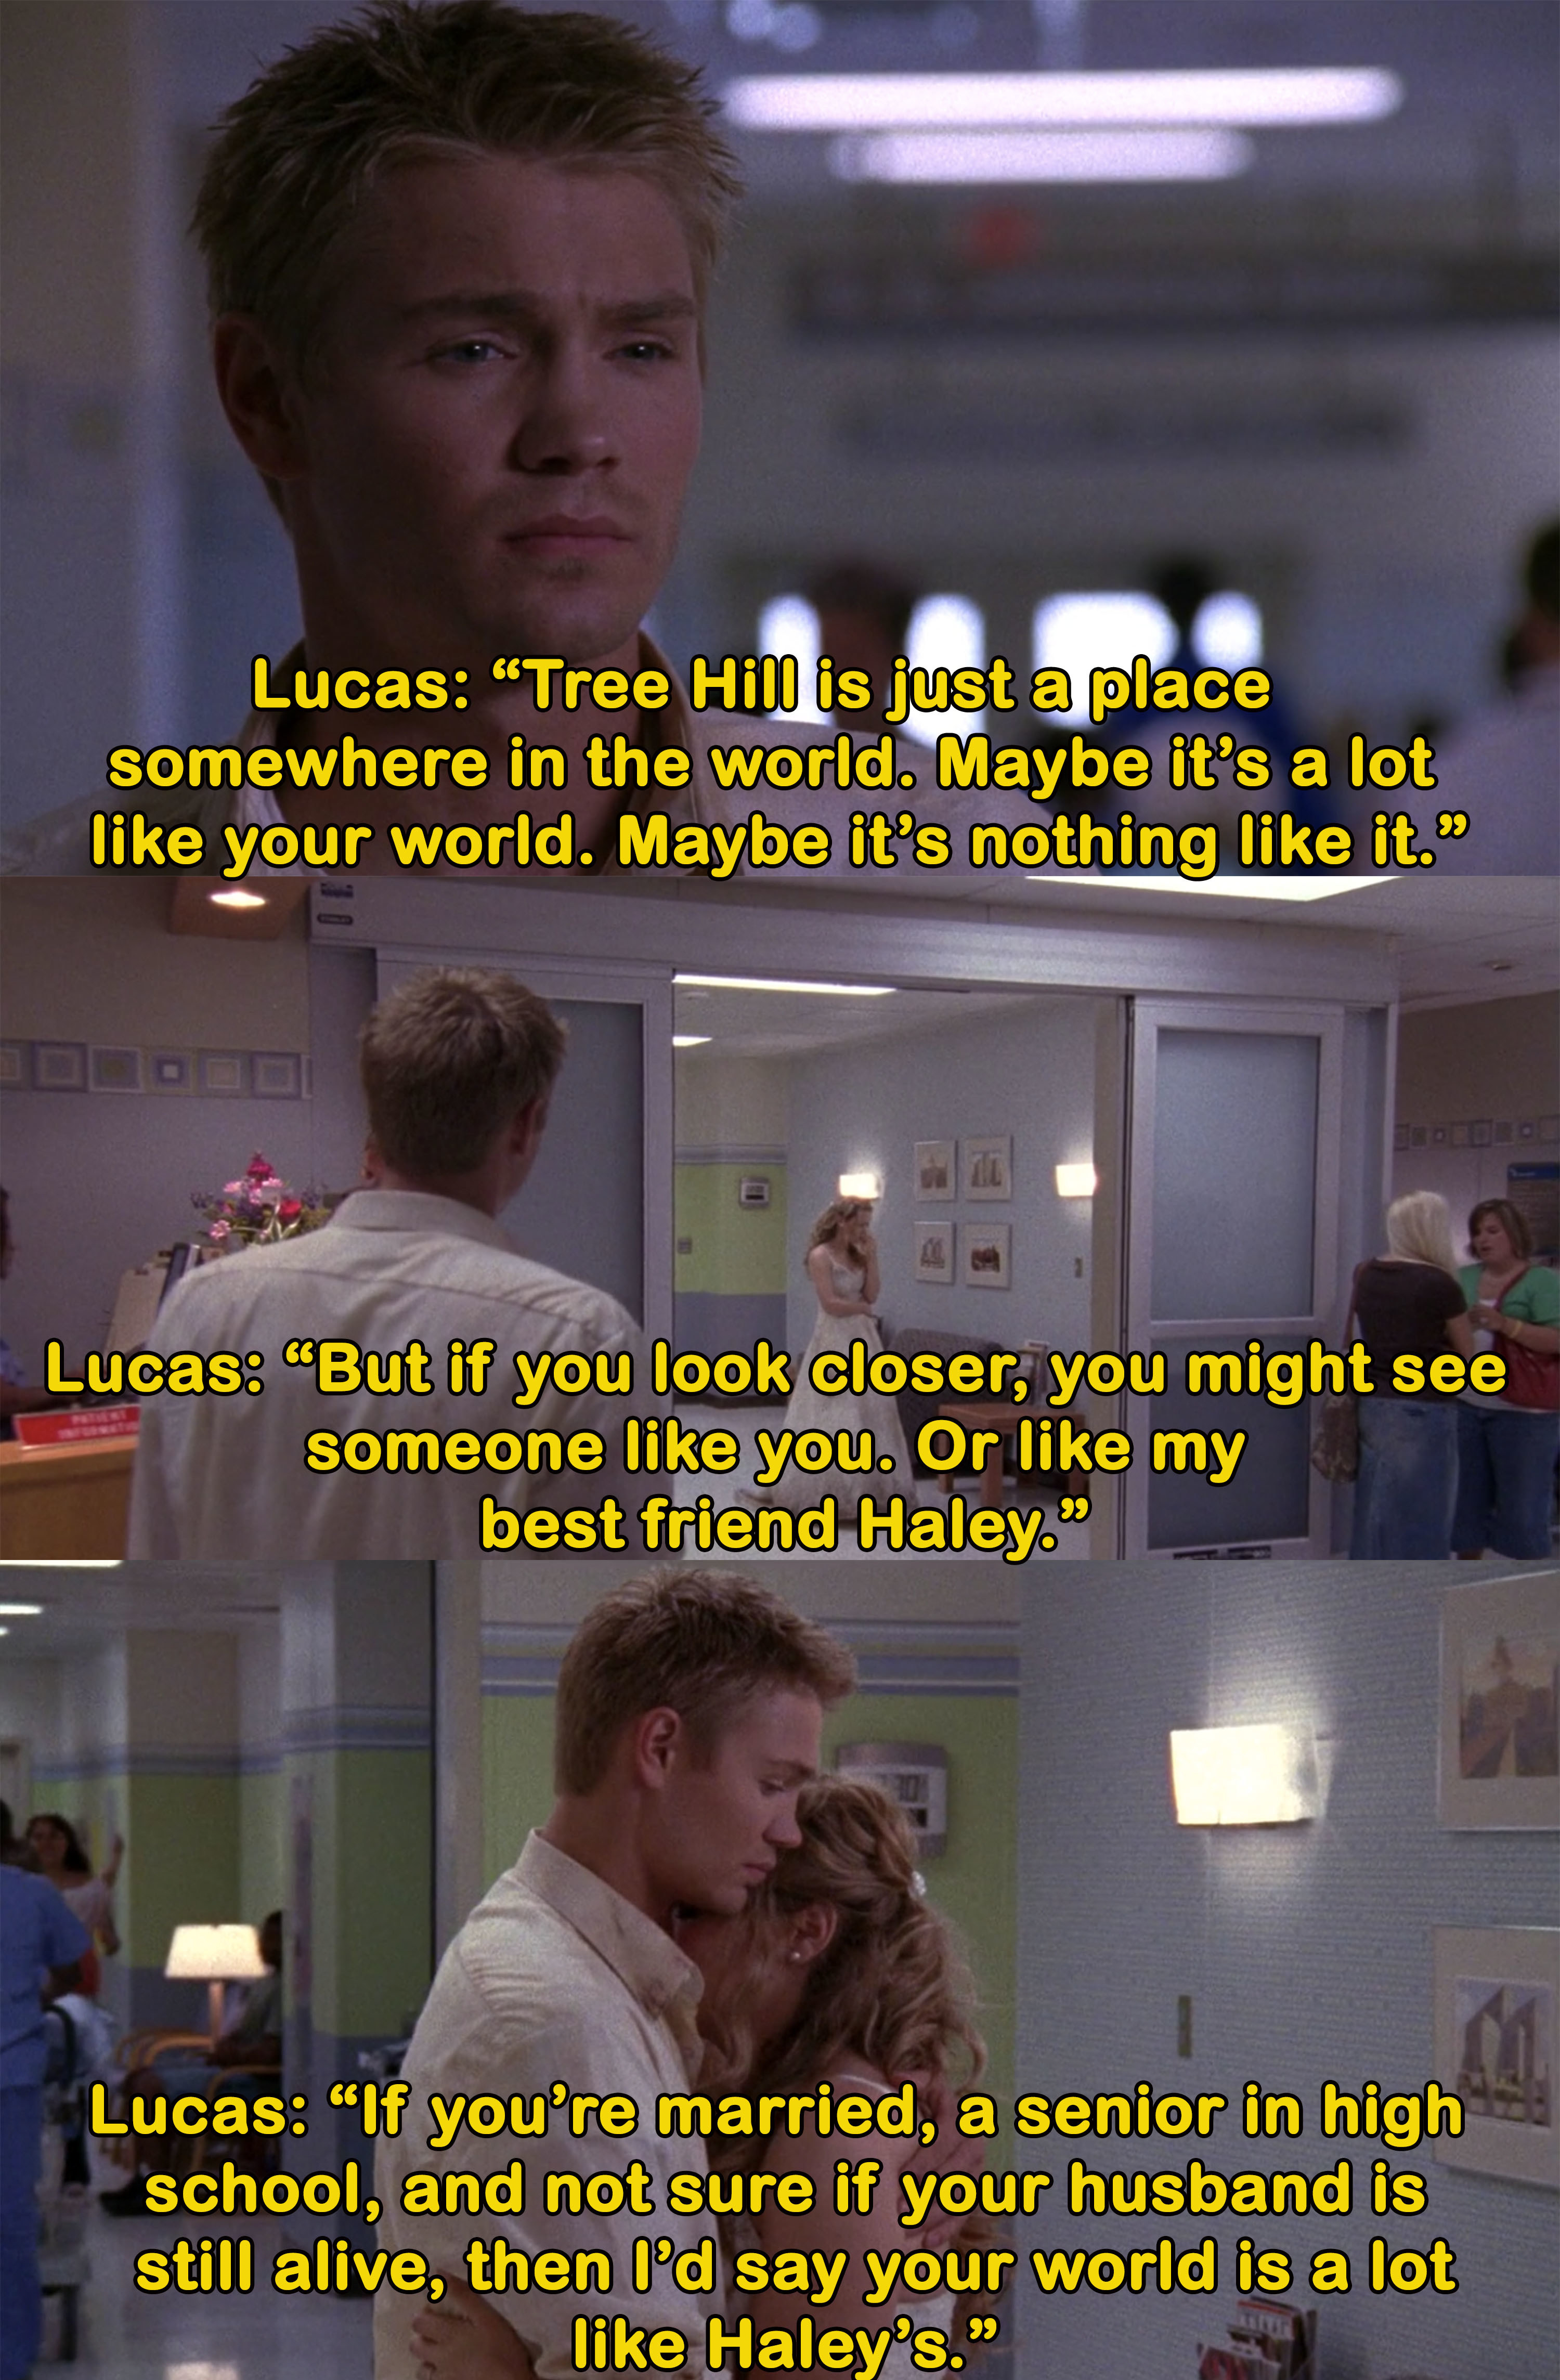 Lucas says you'll relate to Haley if you're married, a senior in high school, and unsure if your husband is alive